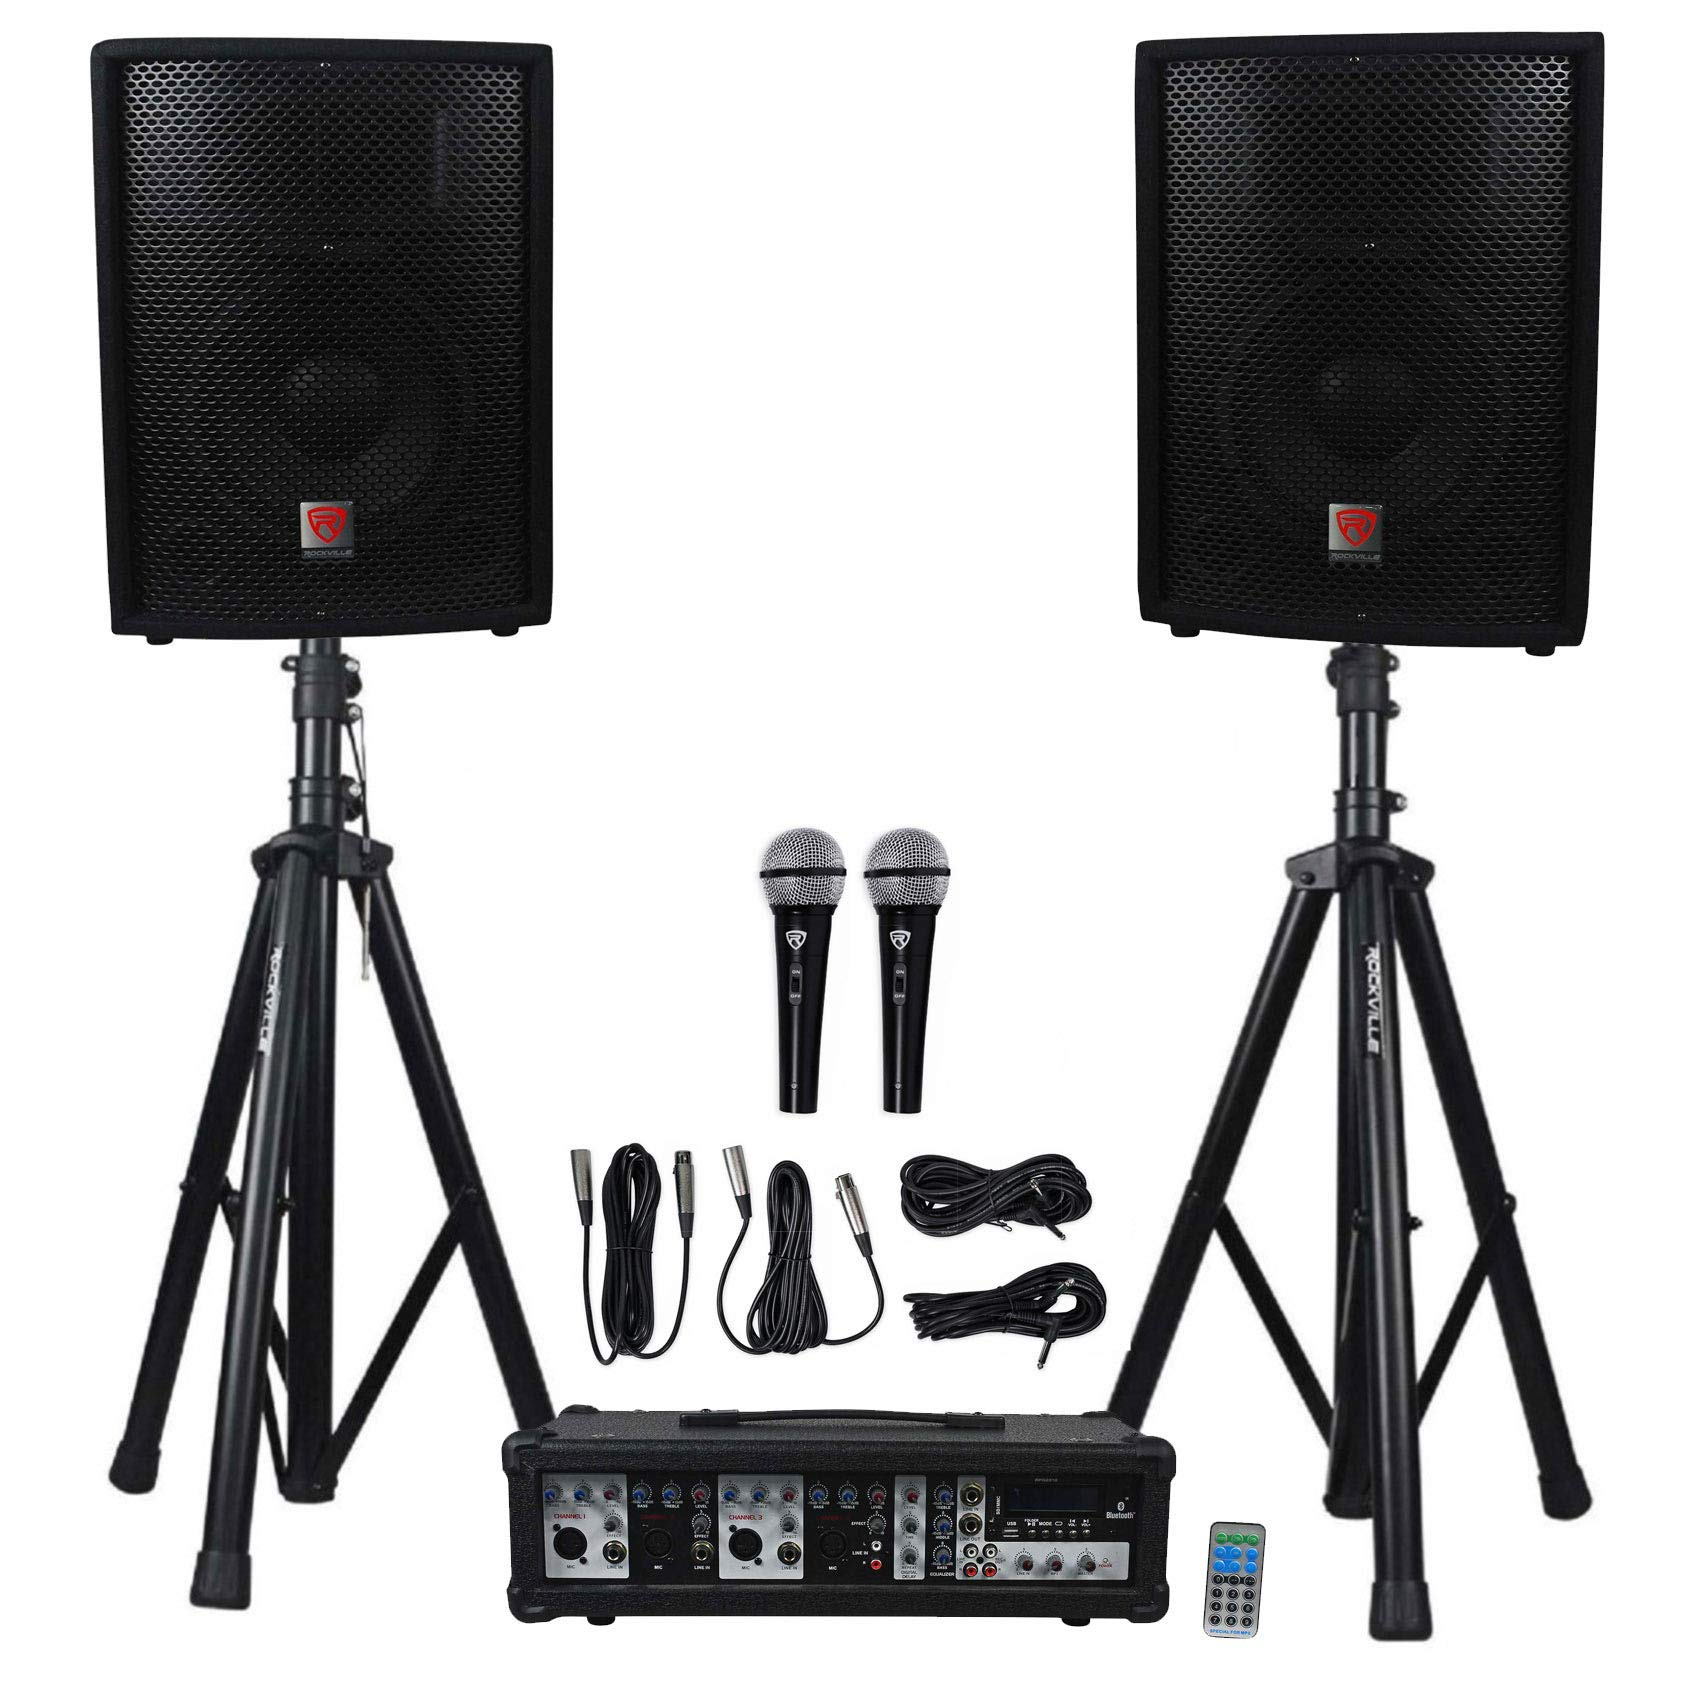 Rockville RPG2X10 Package Speakers Bluetooth